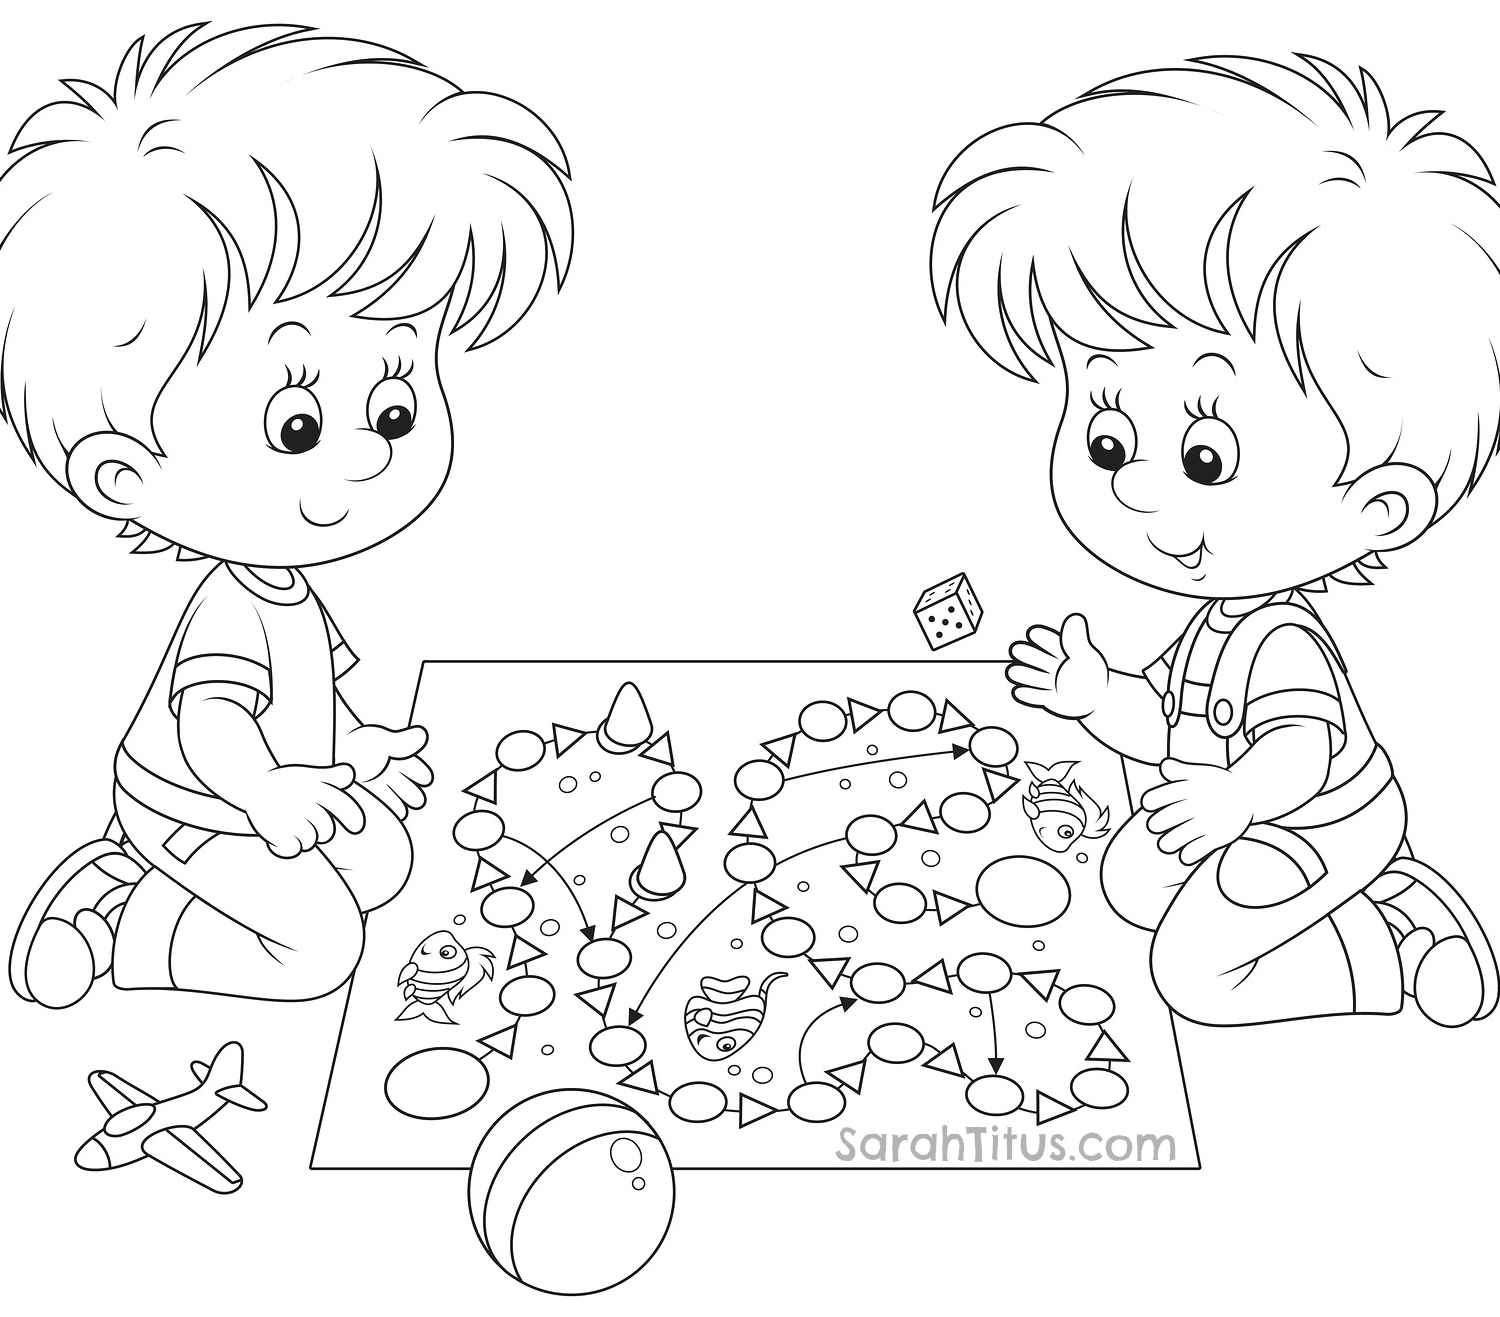 1500x1317 Uk Countryside Code Colouring Pages, Coloring Pages For Kids